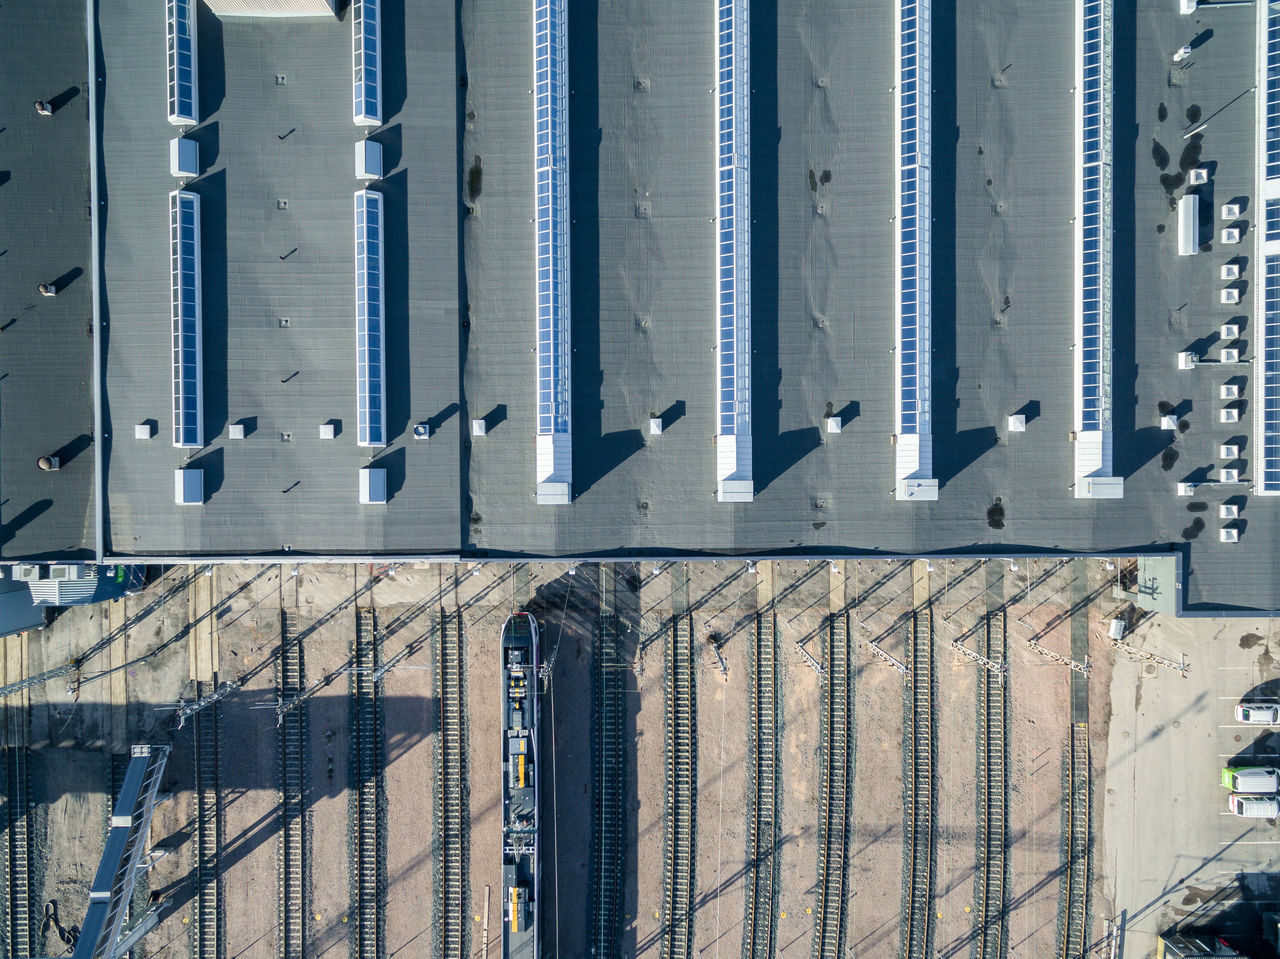 Architecture Building Exterior Built Structure Close-up Corrugated Iron Day Drone  Finland From Above  Helsinki High Angle View No People Outdoors Top Perspective Tracks Train Transportation